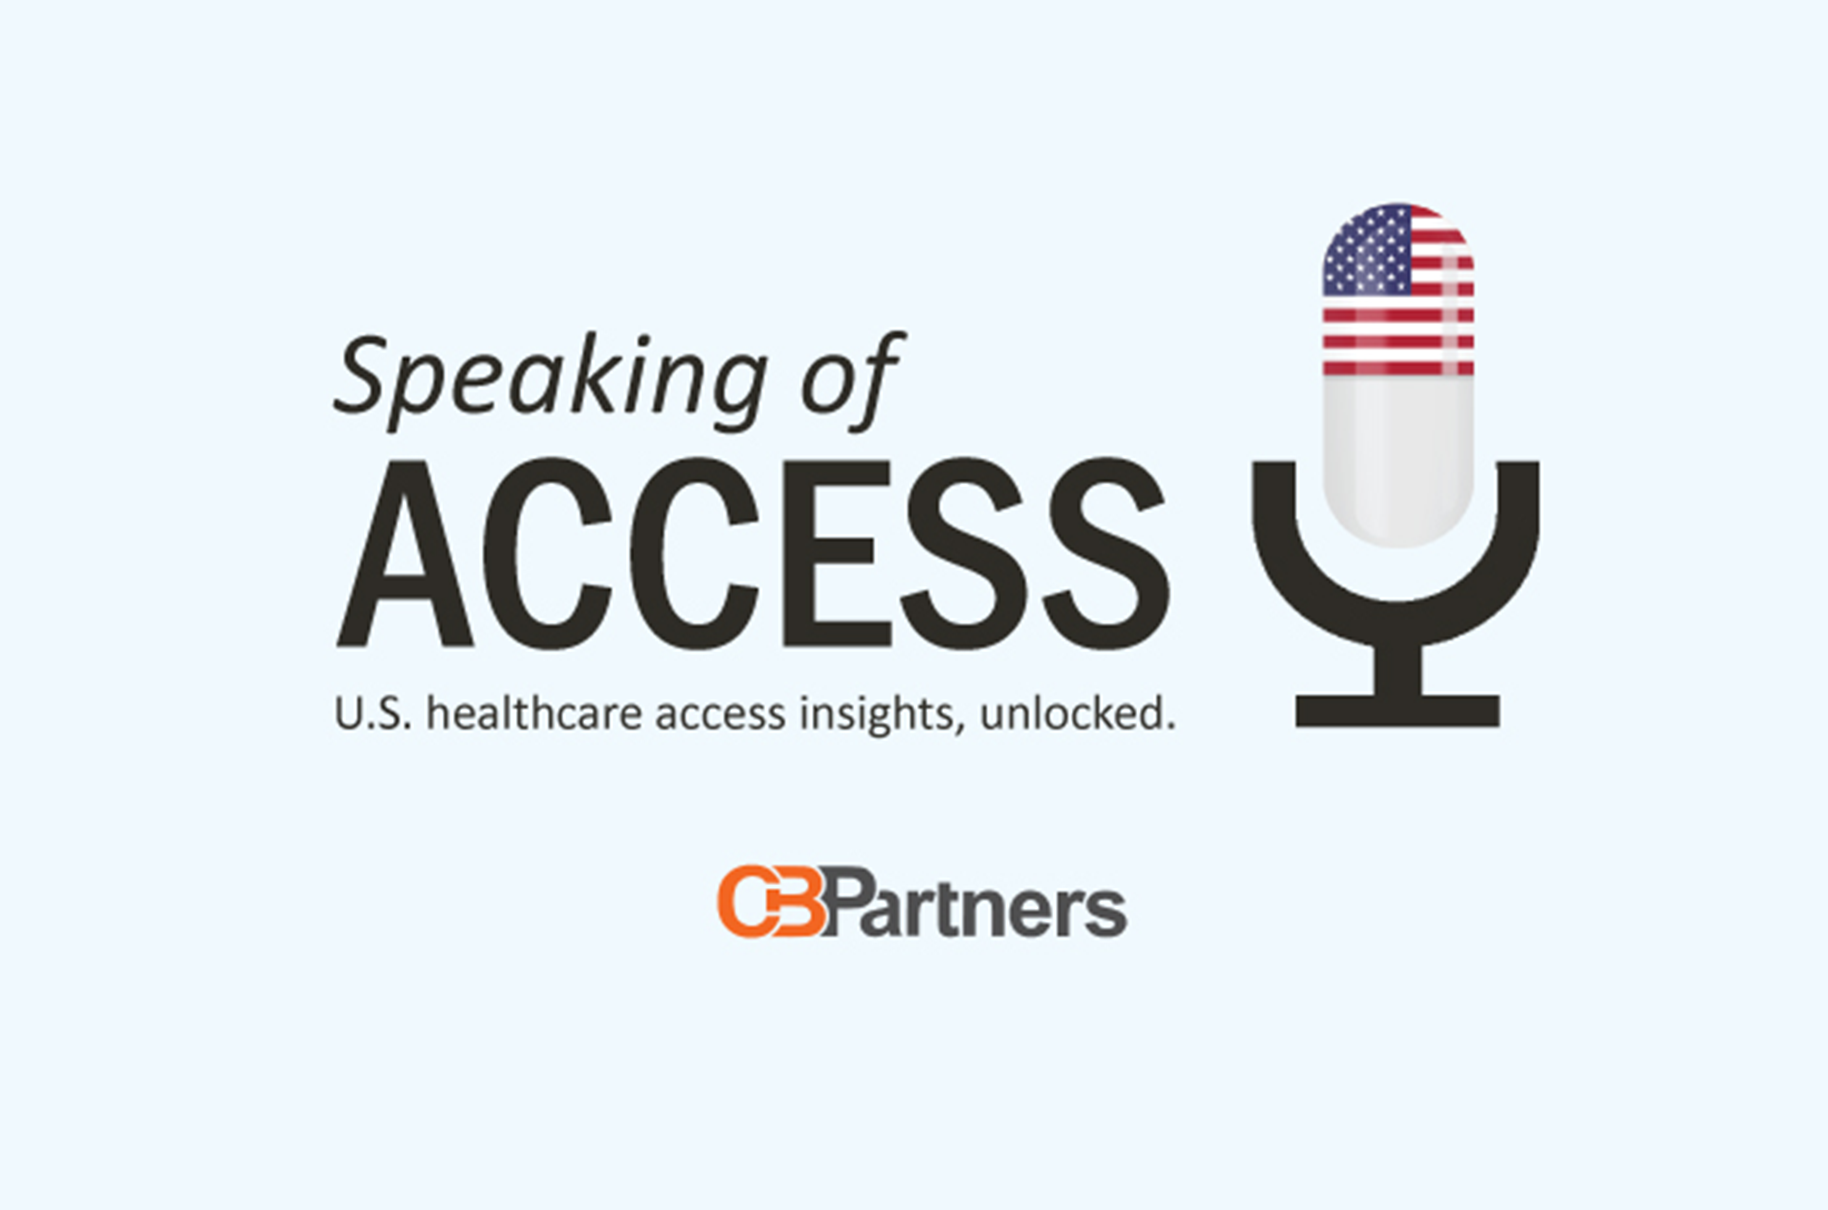 Speaking of Access: The Management of Tumor-Agnostic Therapies from CBPartners